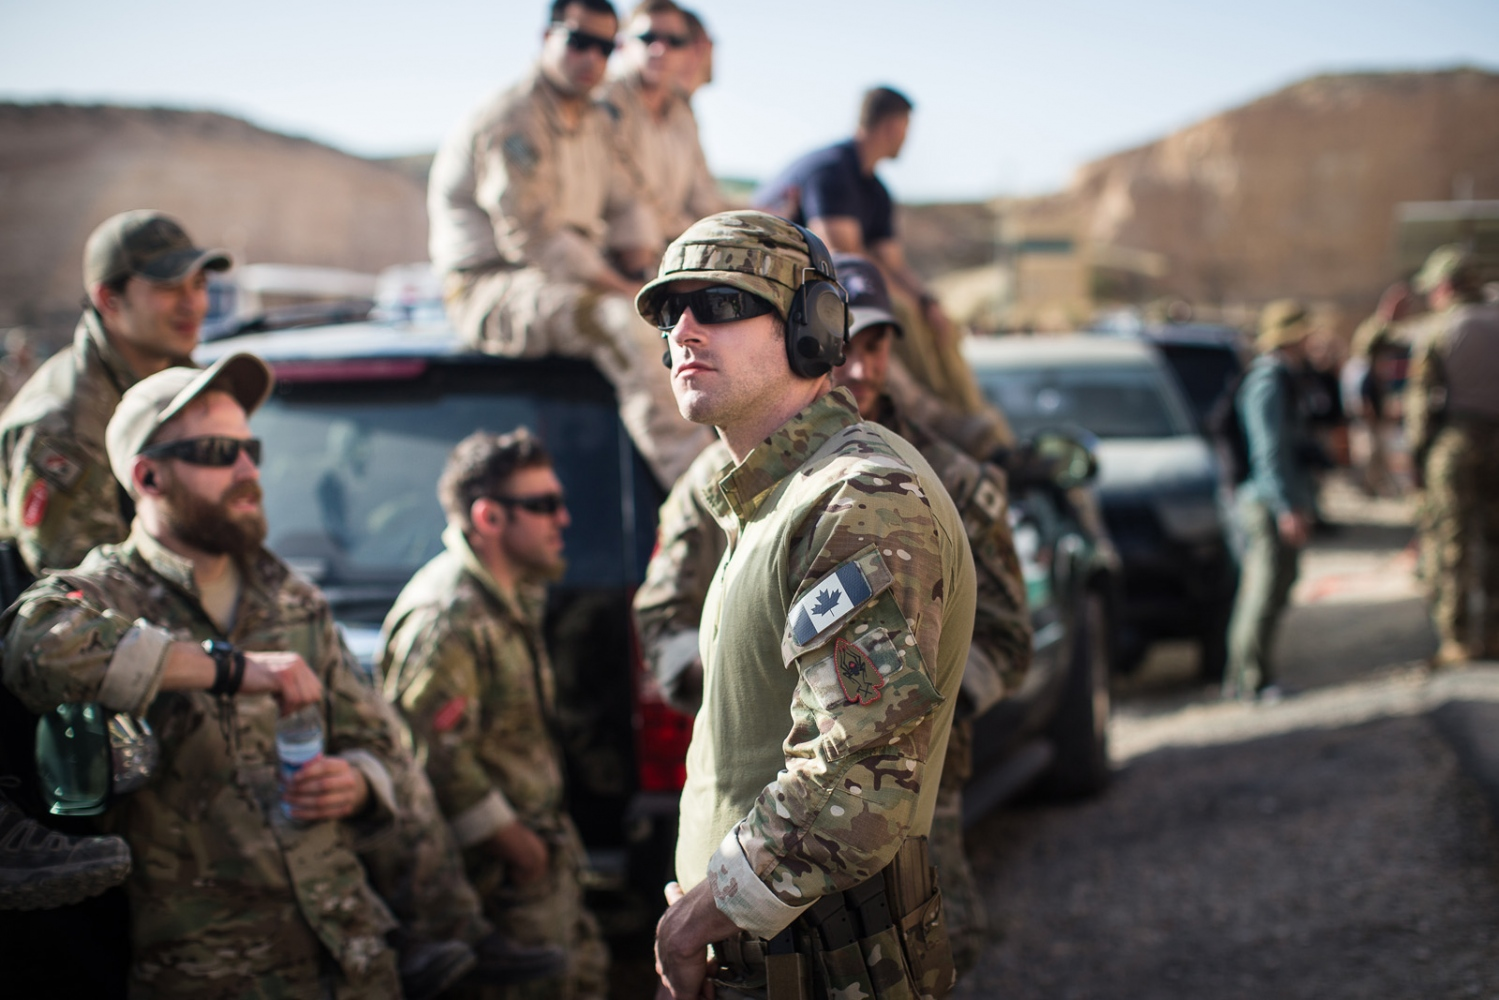 "Members of the American and Canadian teams cheer together and watch the remaining teams compete in the ""Top Gun"" event at the seventh annual Warrior Competition at the King Abdullah II Special Operations Training Center near Amman, Jordan on April 19, 2015. Jordan and the United States were finalists in the event, with Jordan ultimately coming in first place."